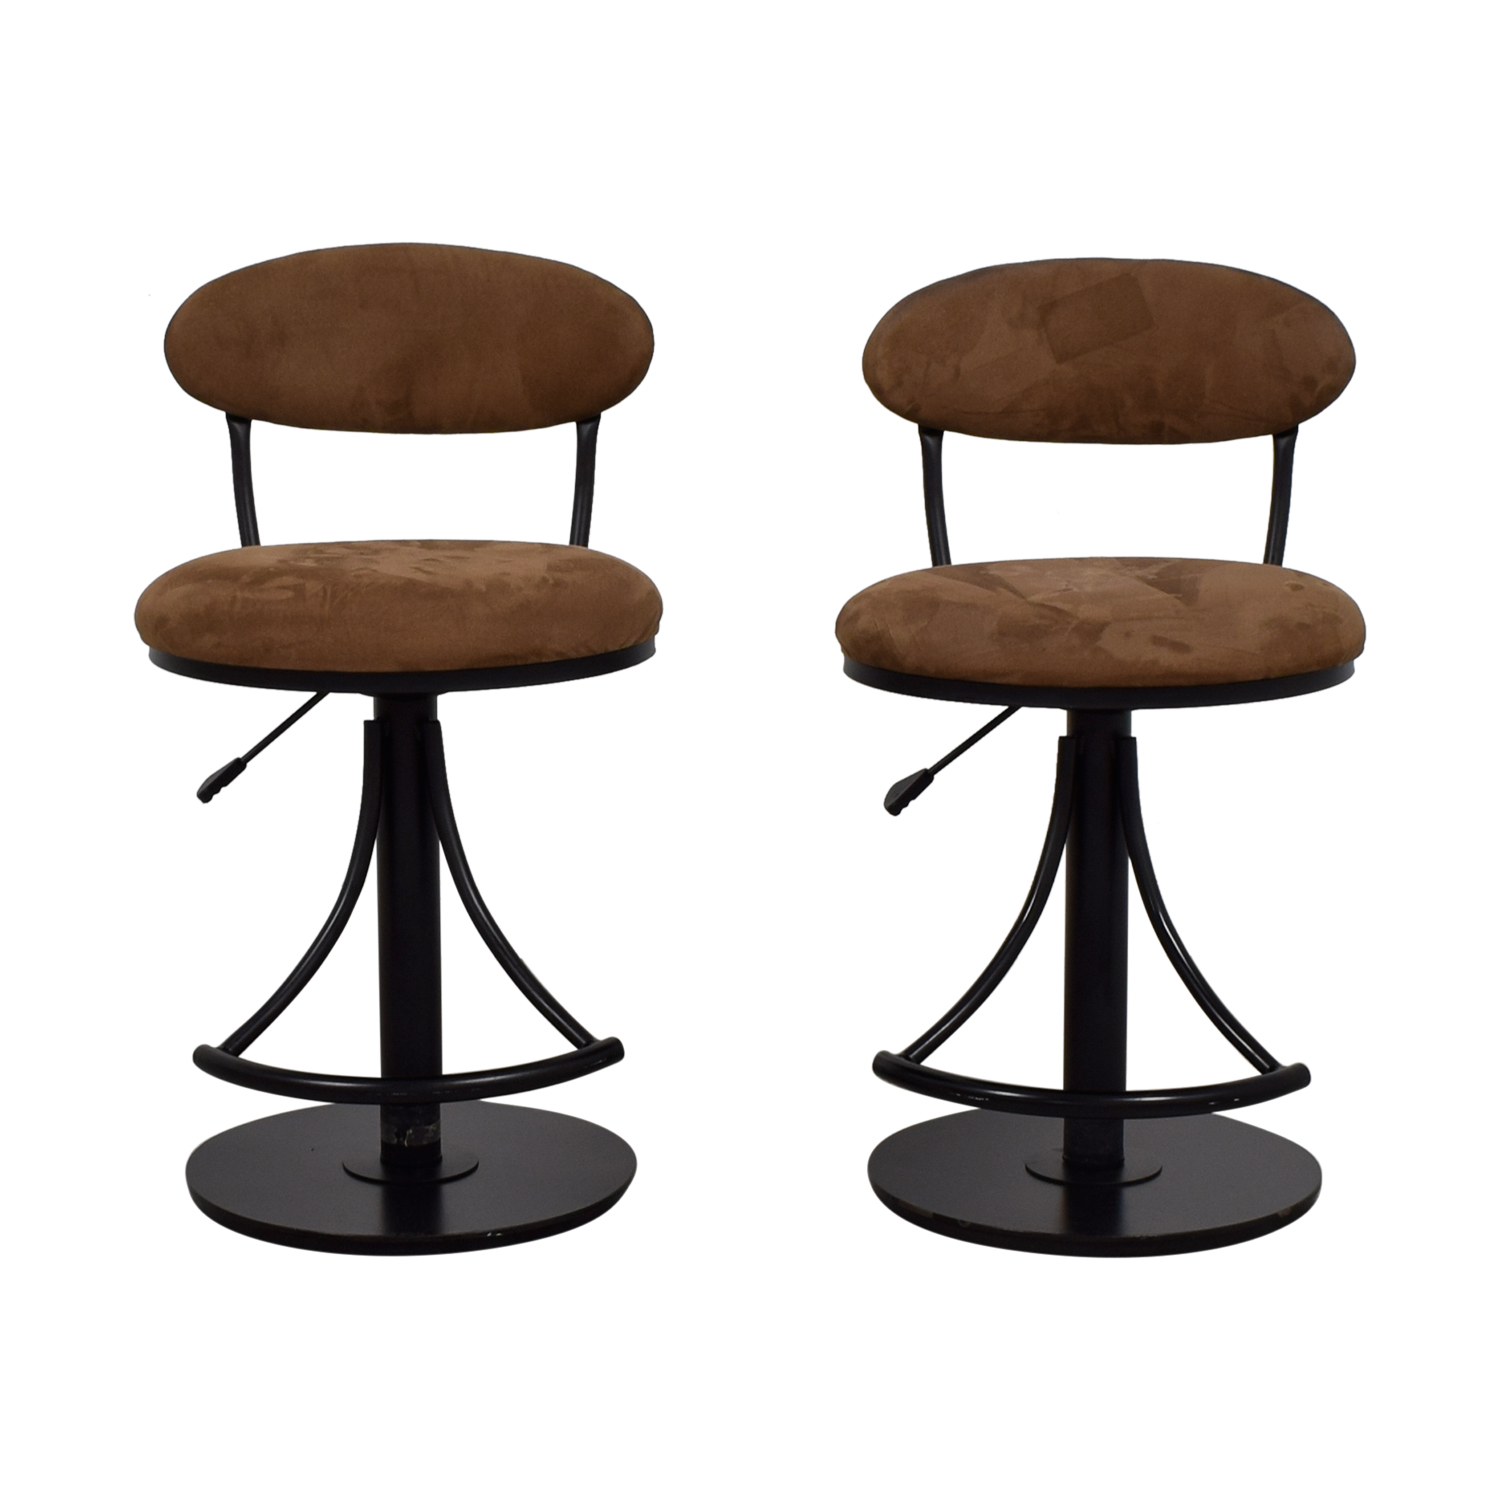 Raymour And Flanigan Dining Chairs: Raymour & Flanigan Raymour & Flanigan Tan Bar